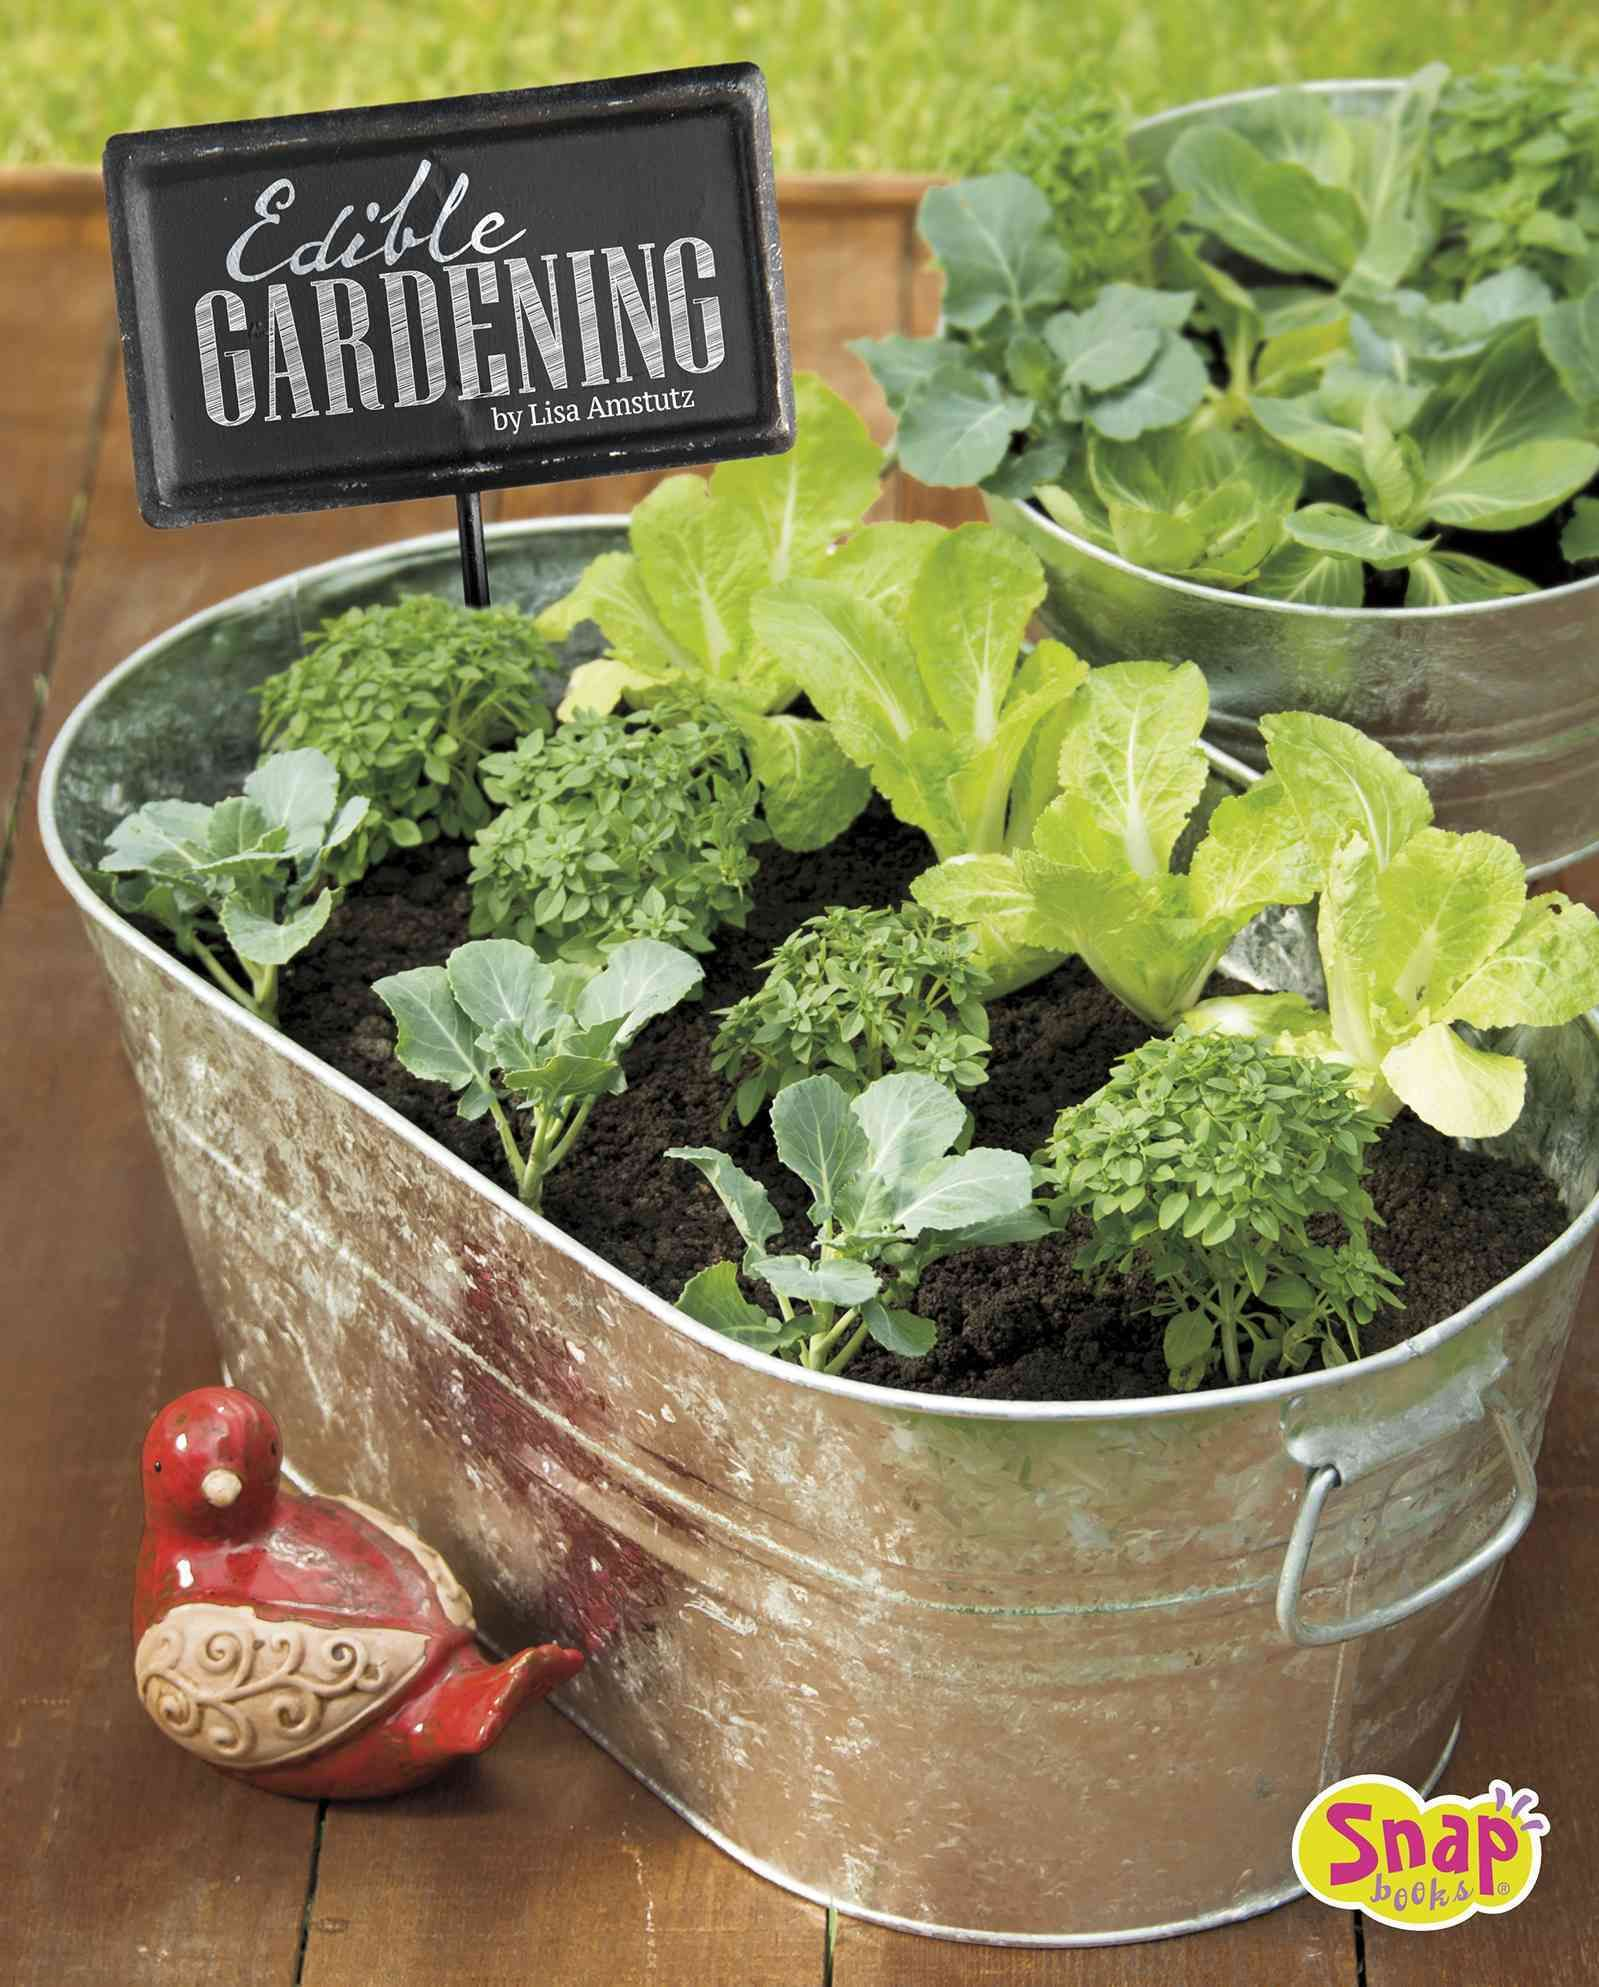 Edible gardening growing your own vegetables fruits and more presents a guide to homegrown produce gardening and provides instructions for eleven garden projects including an edible flower garden a winter garden workwithnaturefo